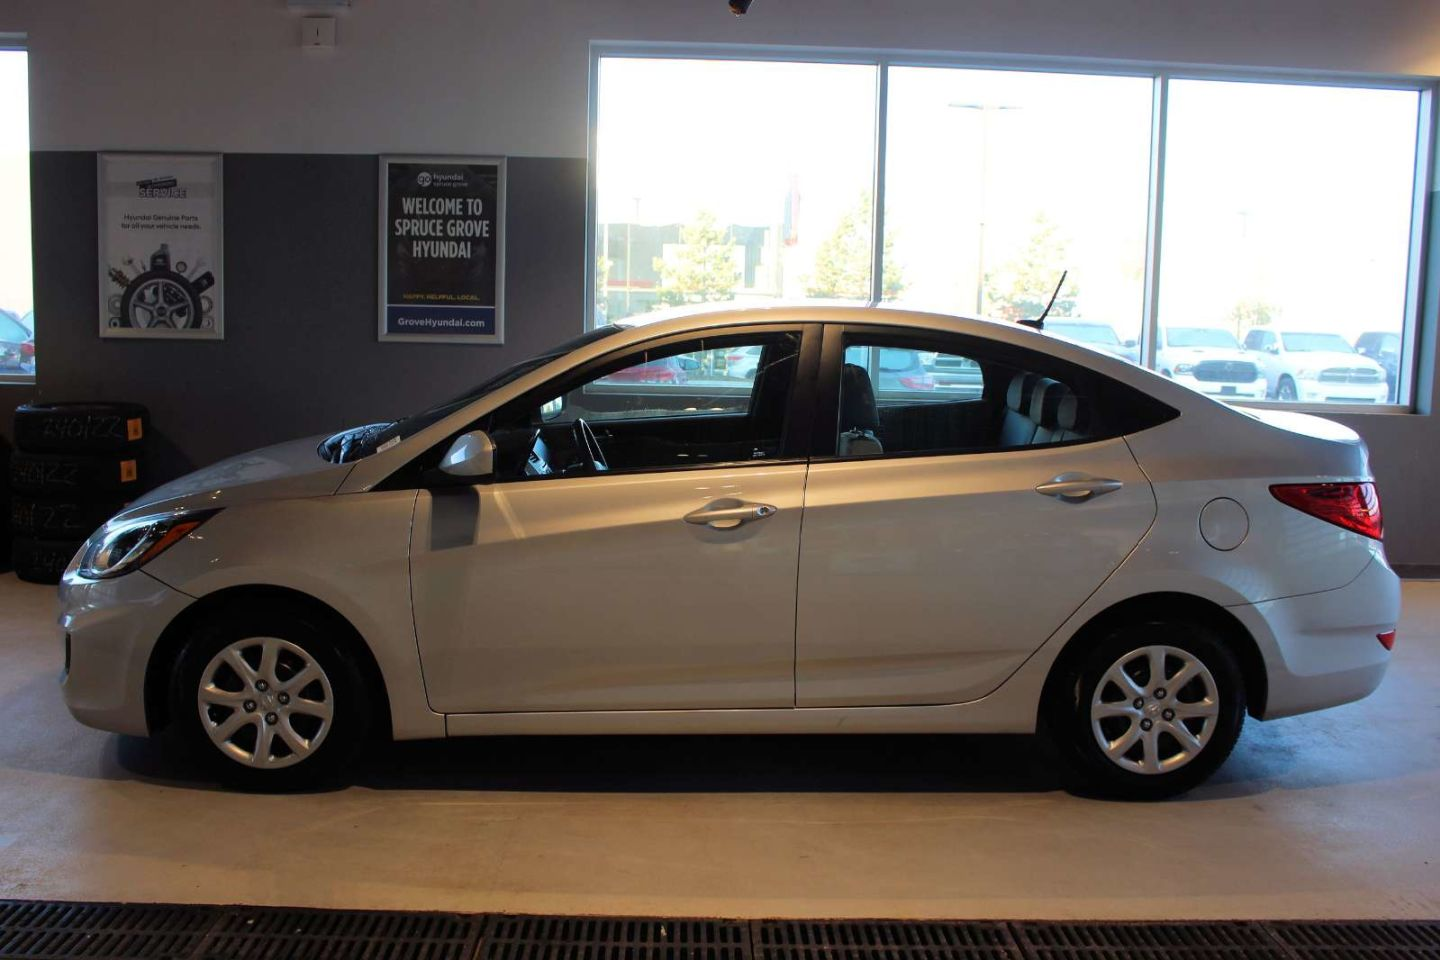 2014 Hyundai Accent GL for sale in Spruce Grove, Alberta